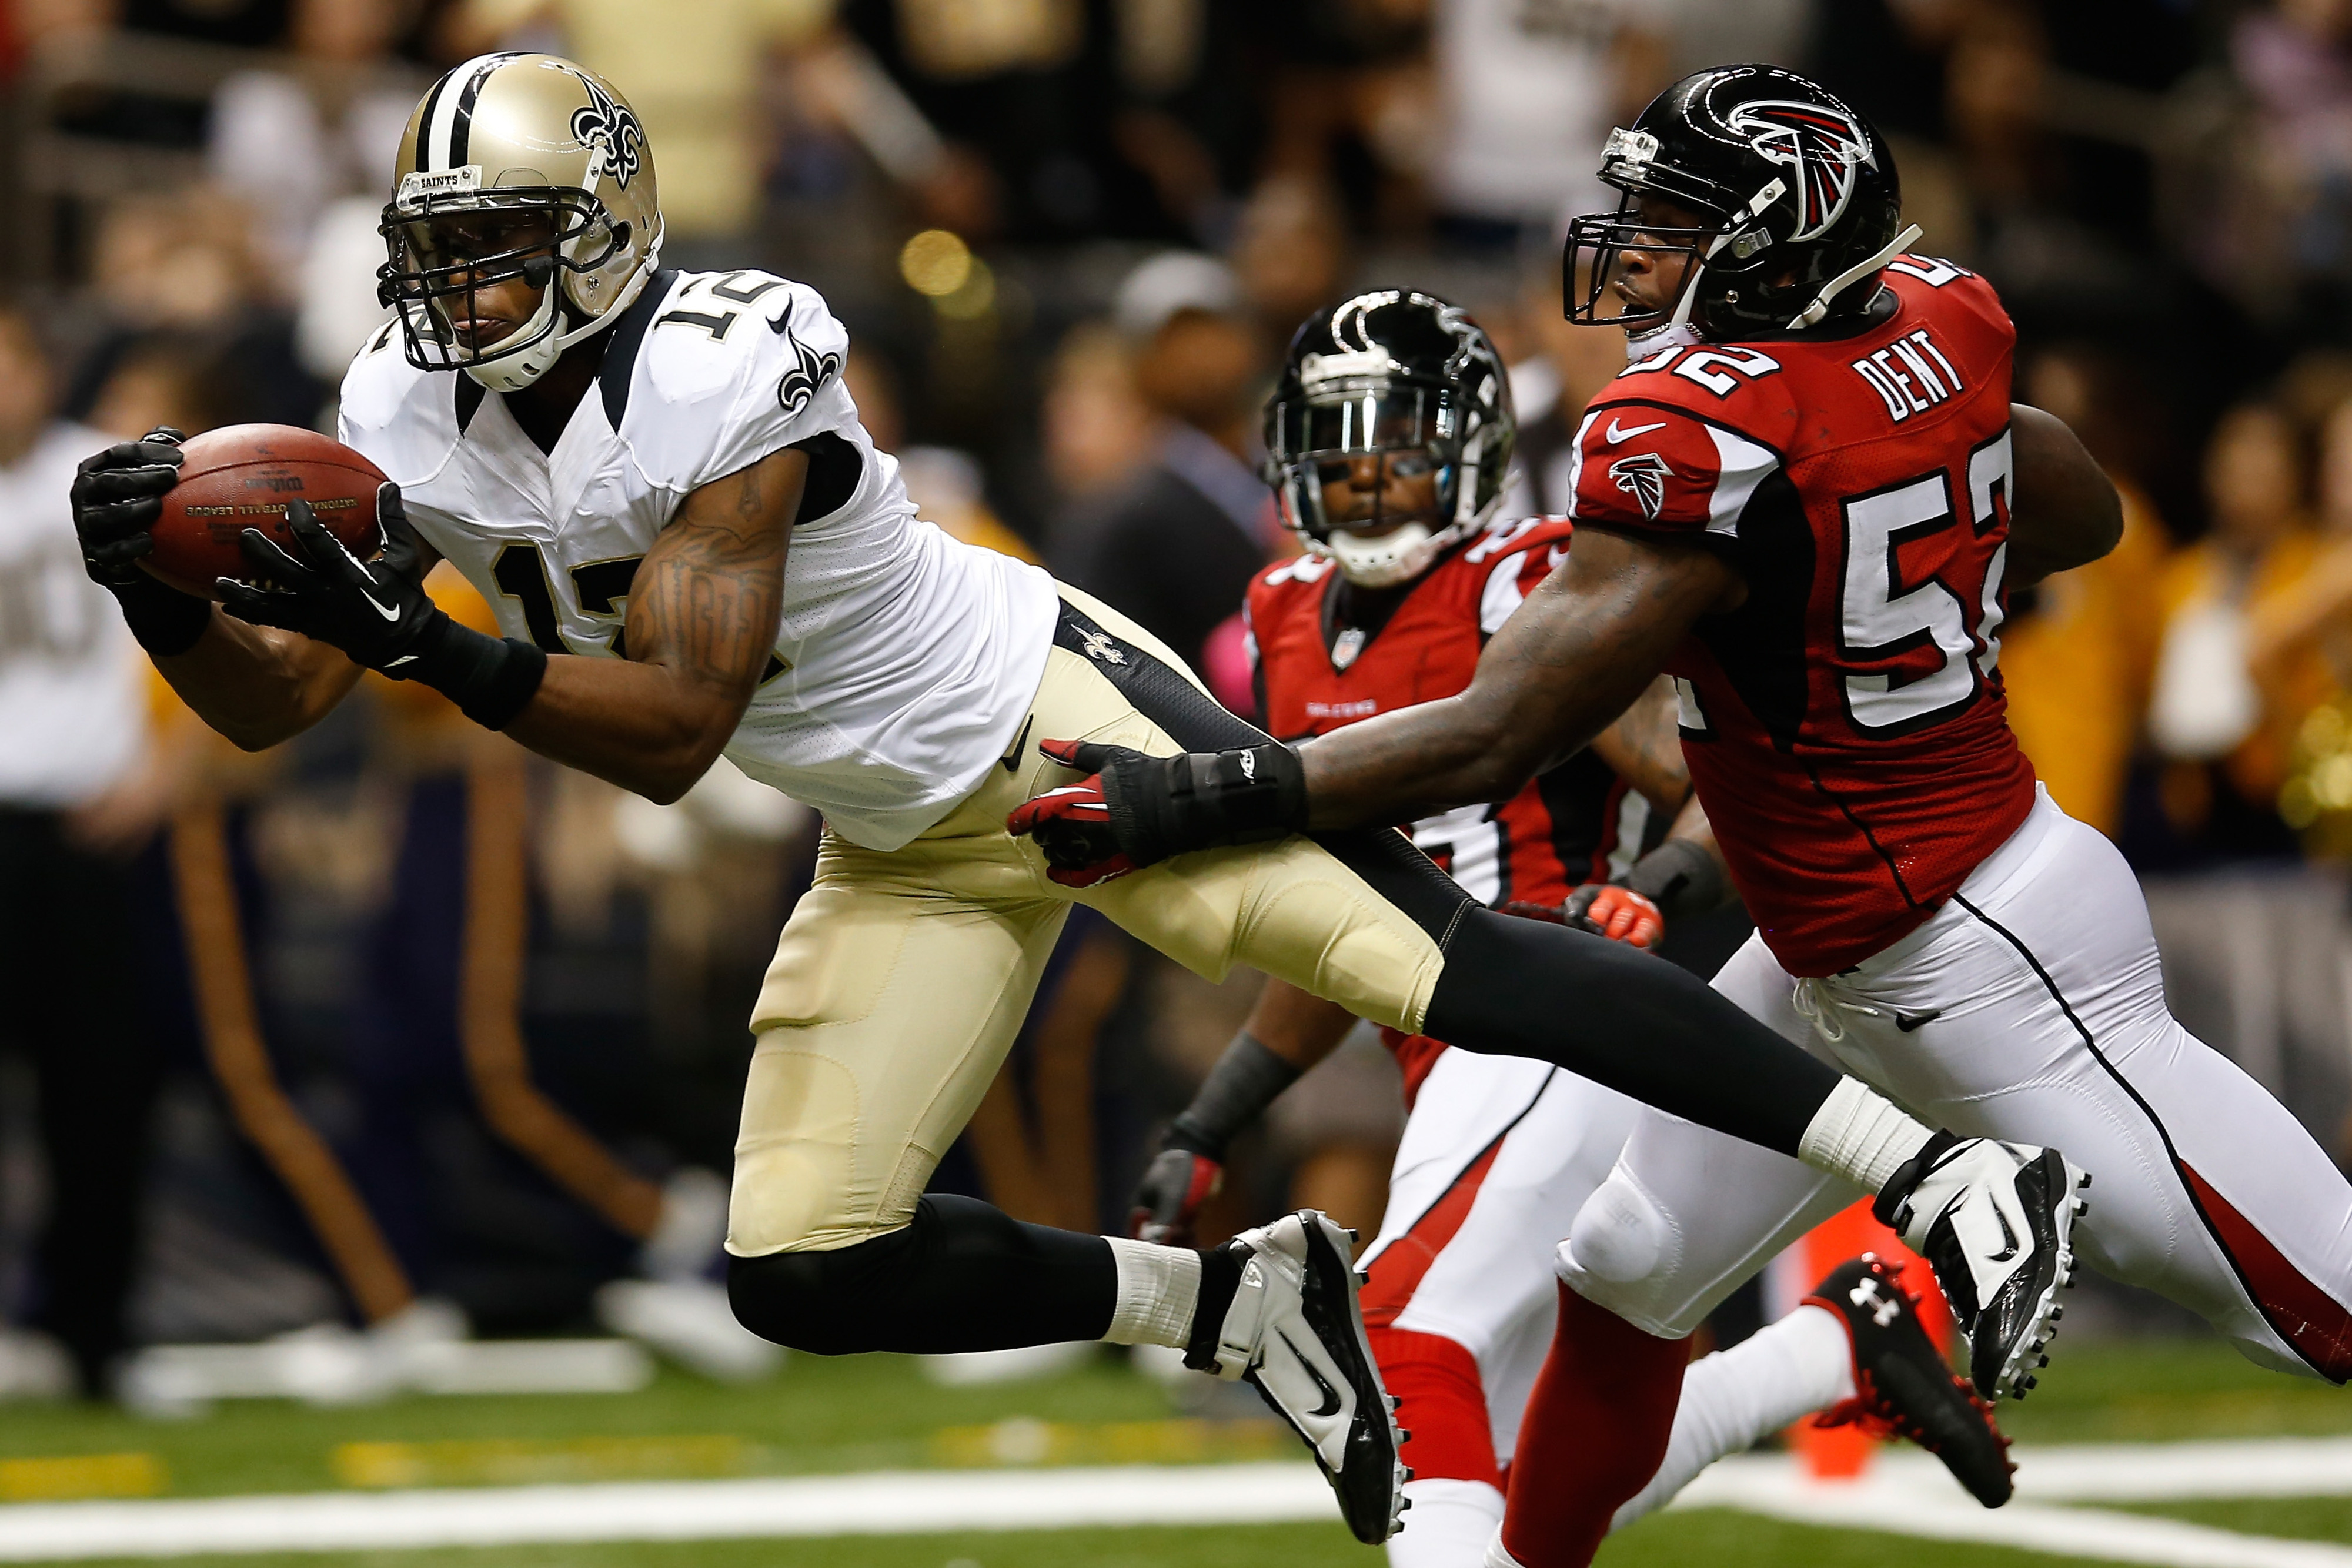 This is Colston's record-setting reception.